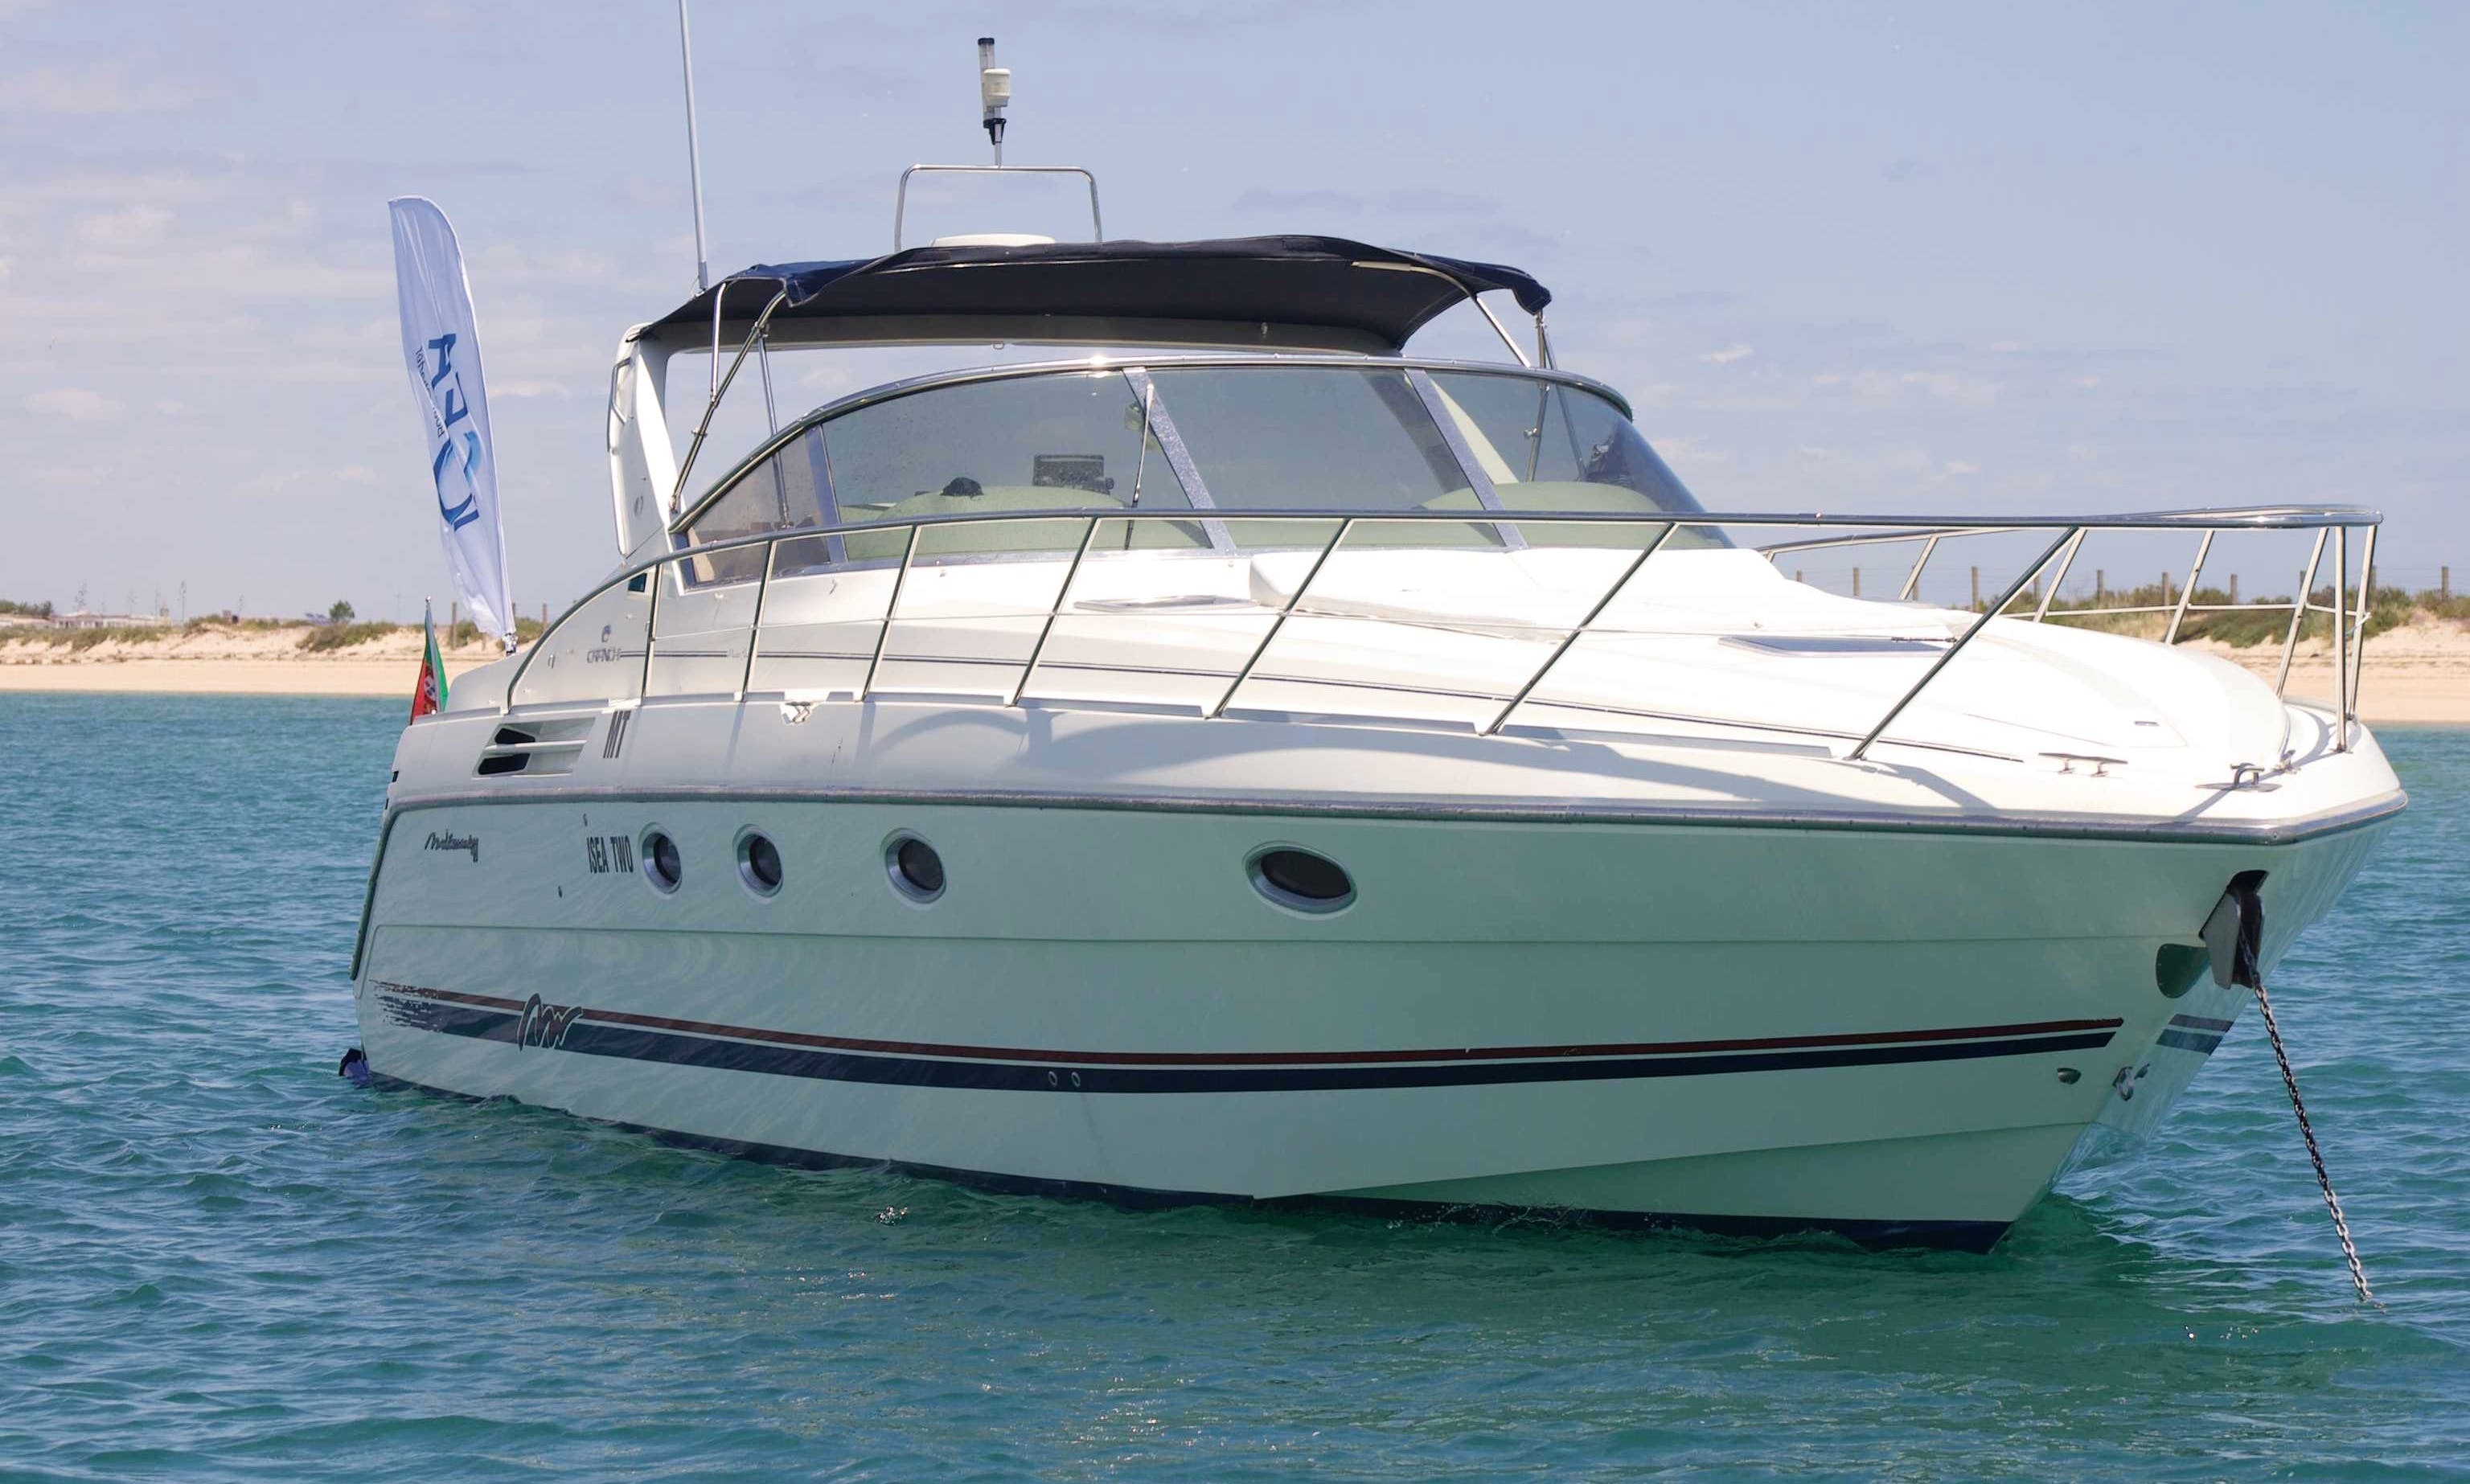 Motor Yacht Private Boat Trips in Algarve, Portugal